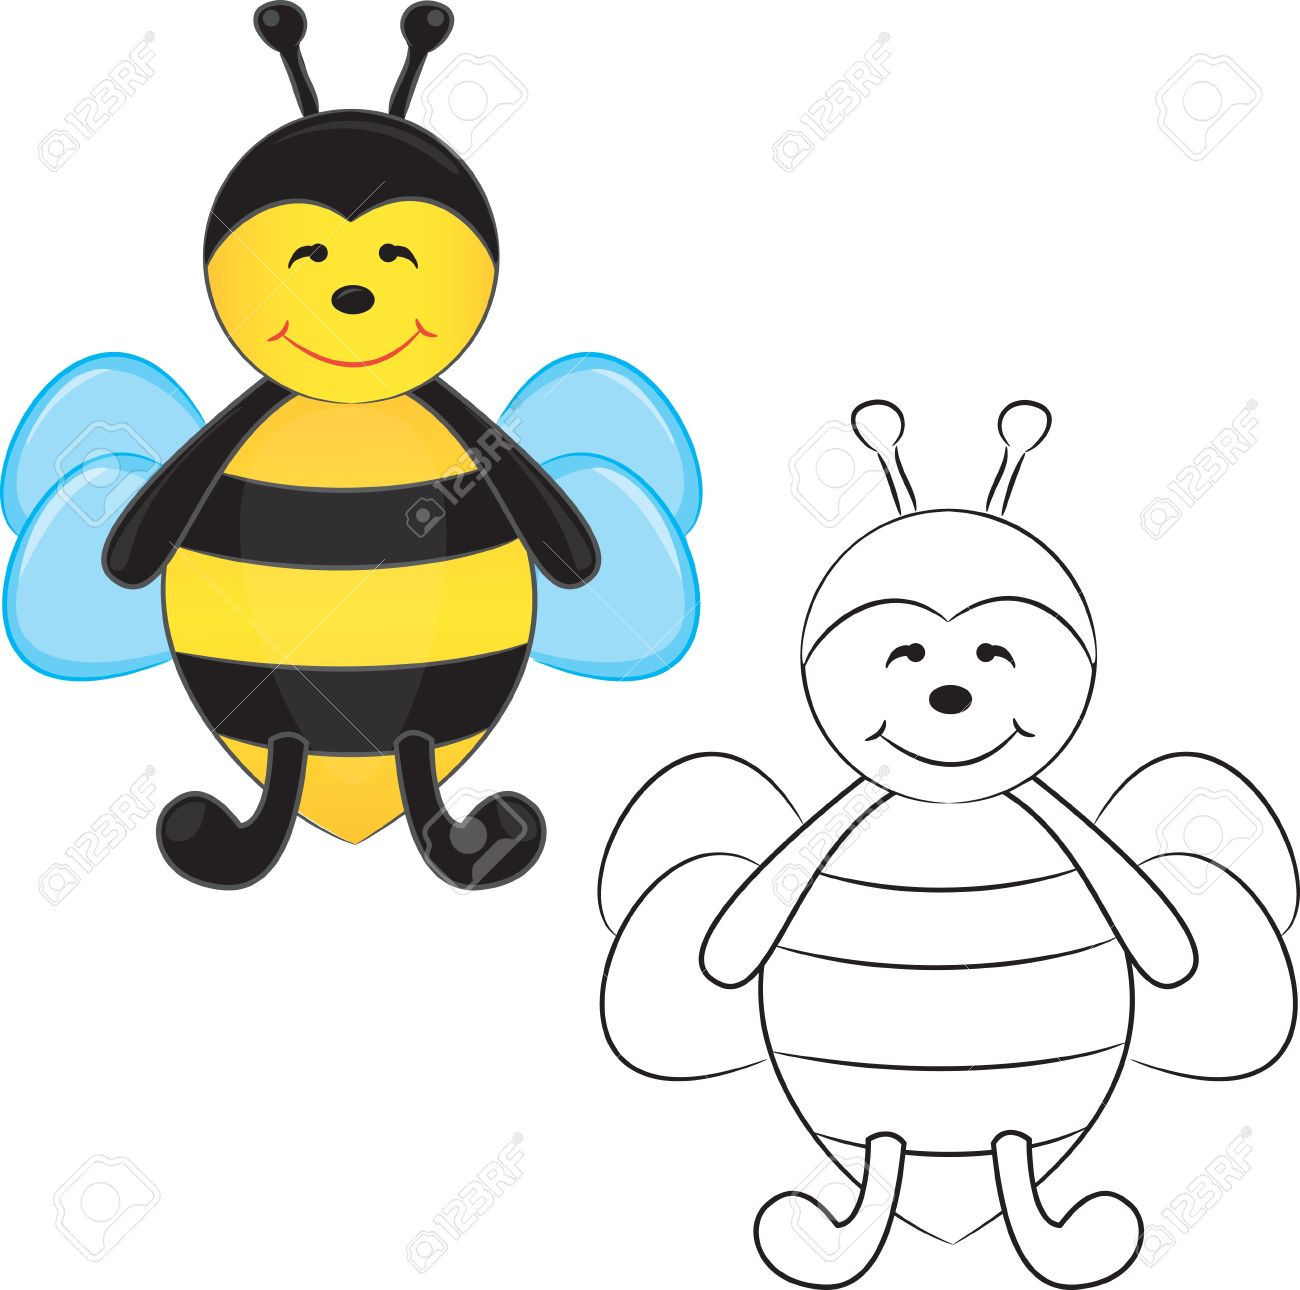 Cute Cartoon Bee. Coloring Book. Royalty Free Cliparts, Vectors, And ...